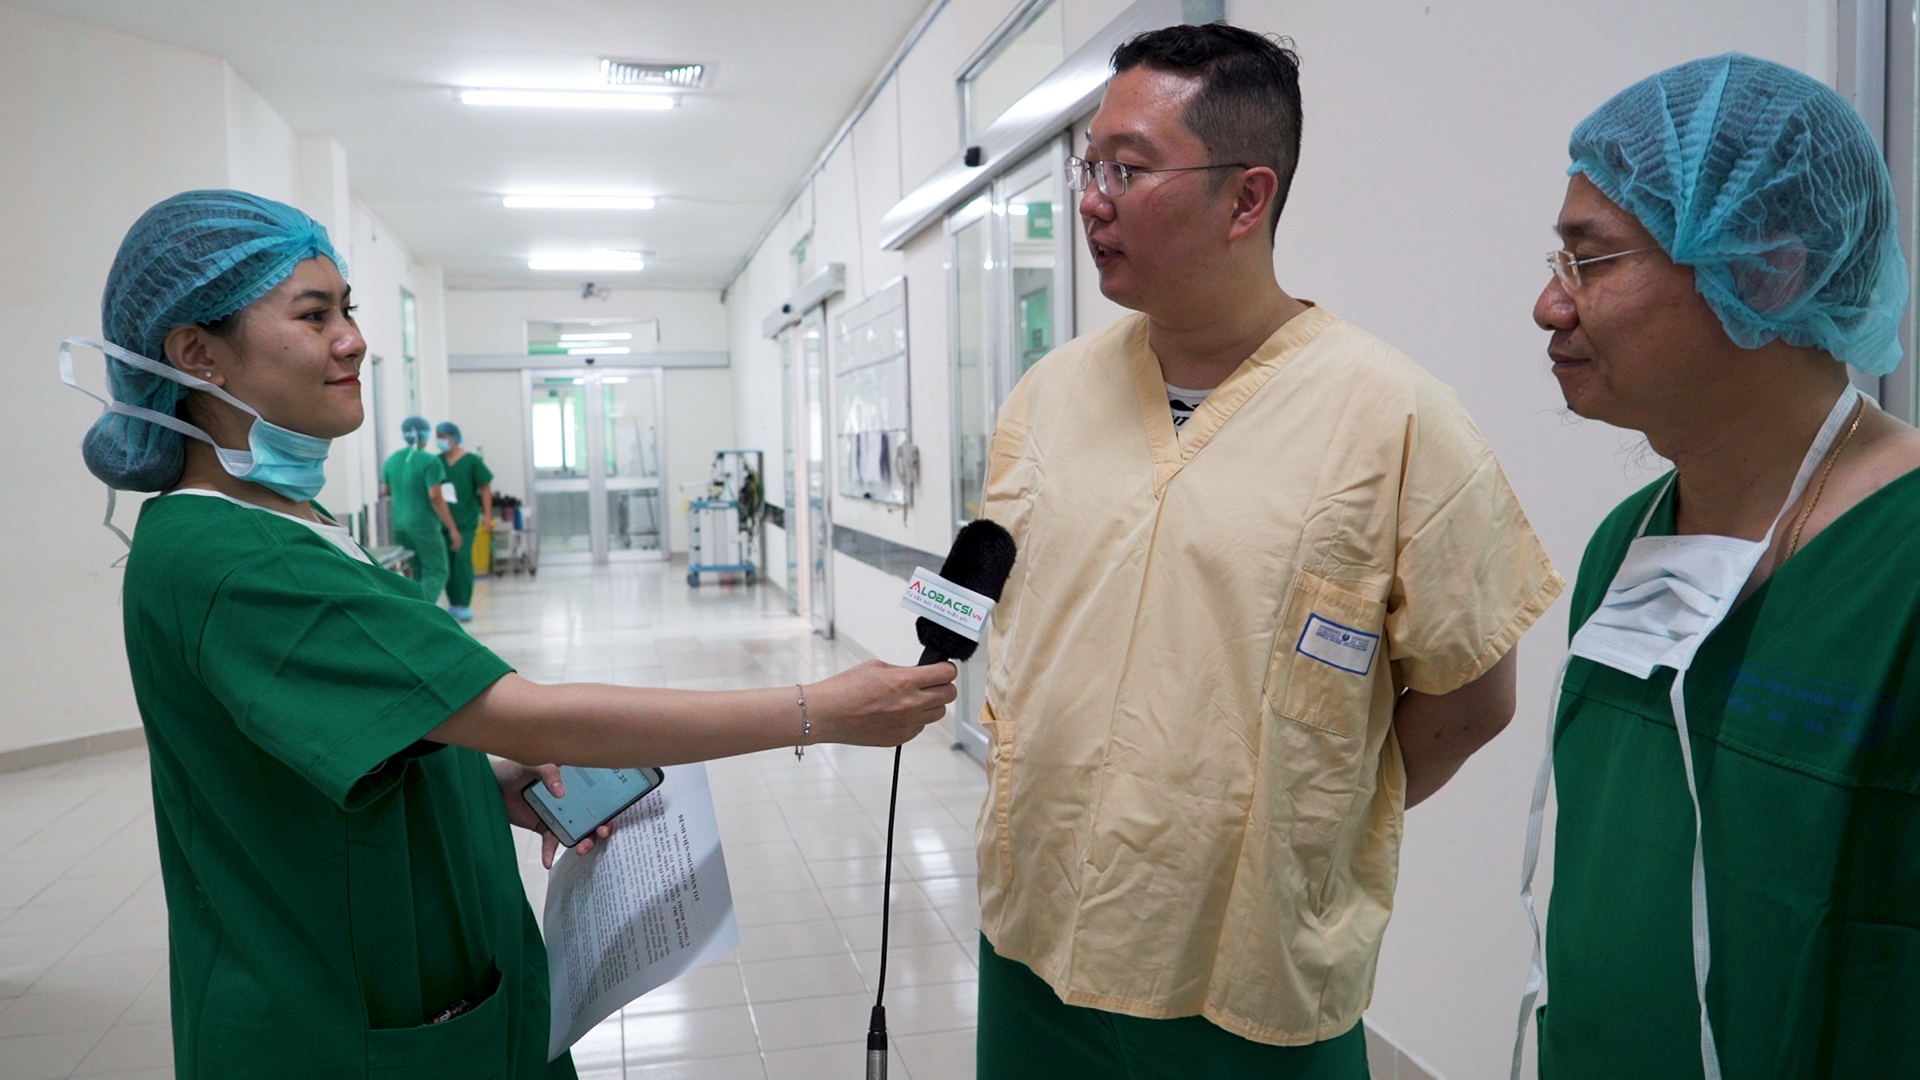 Dr. Park Penile Implant Surgery Interview Vietnam